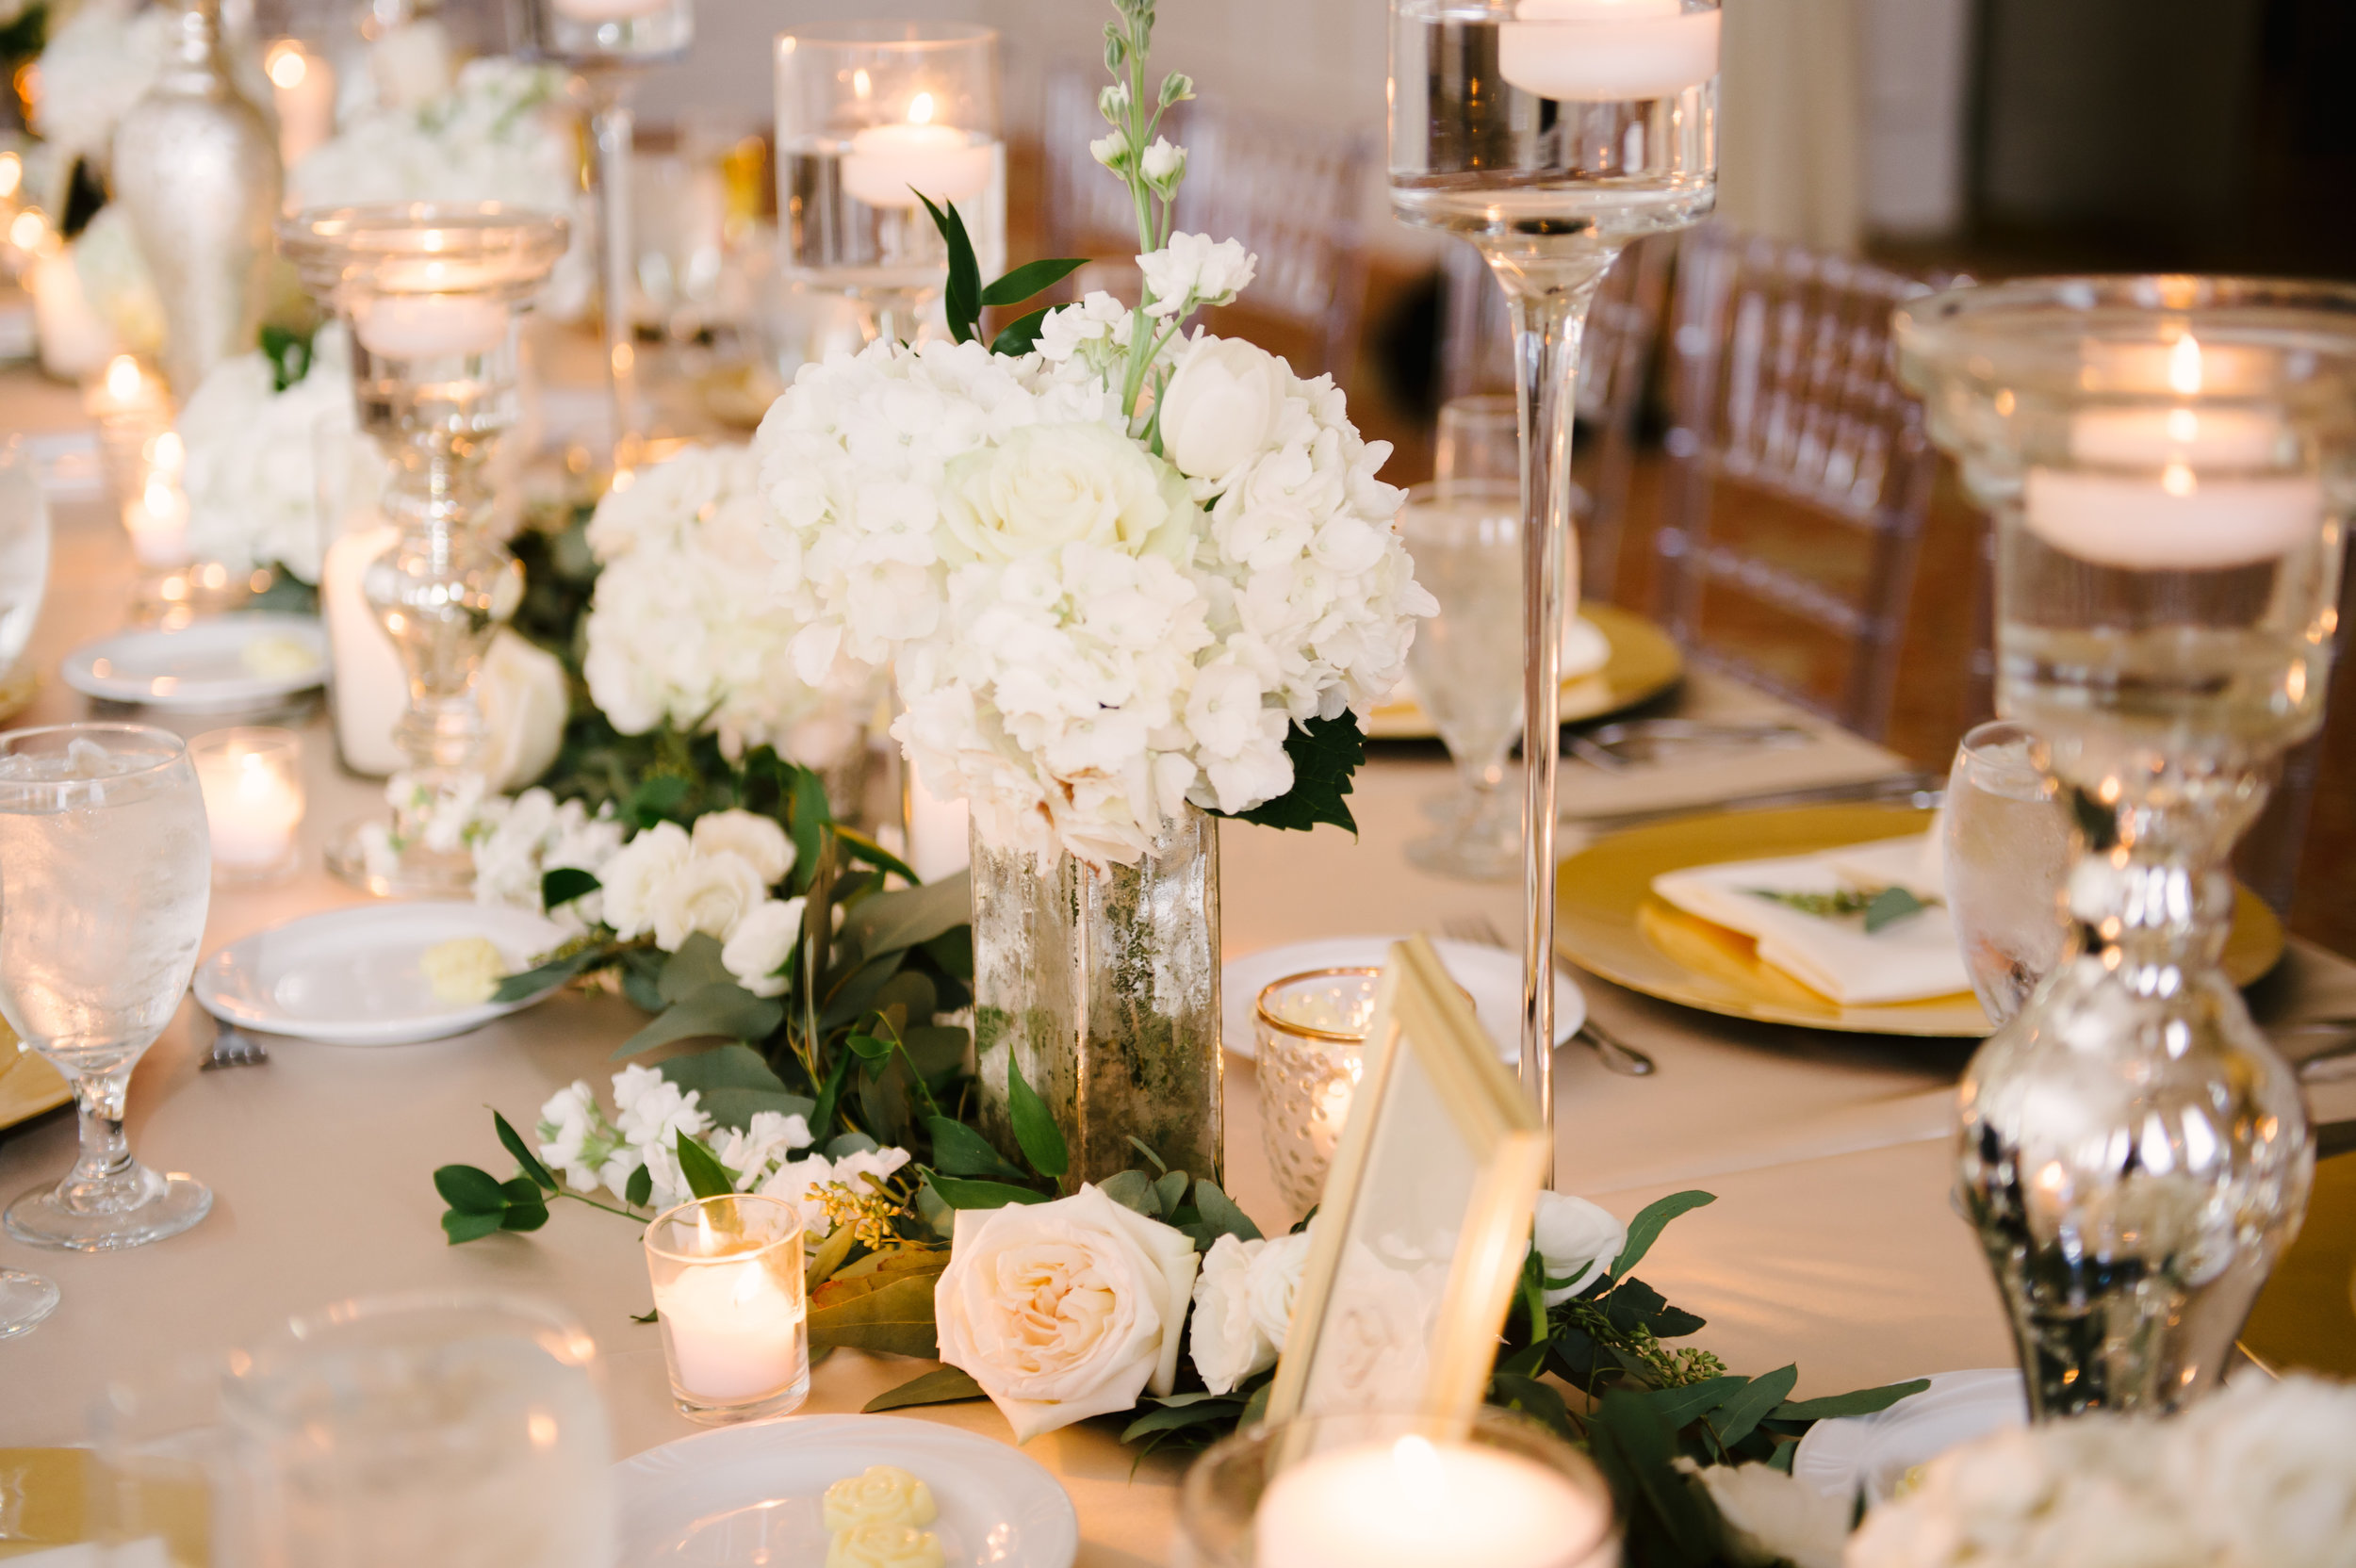 The garland from the ceremony aisle was repurposed on the long feasting tables inside the ballroom, and accented with neutral ivory blooms and soft candlelight.